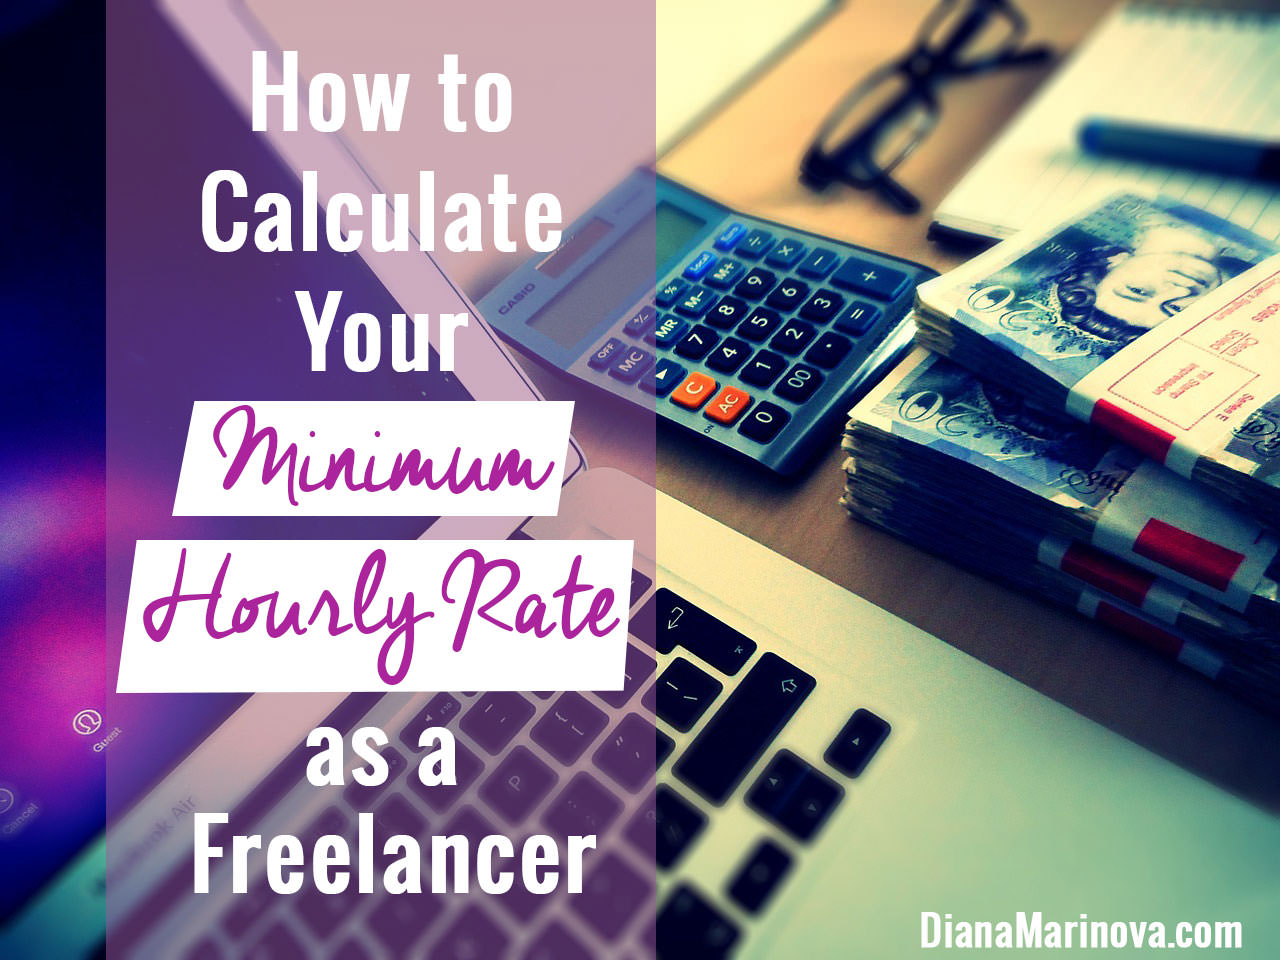 How to Calculate Your Minimum Hourly Rate as a Freelancer